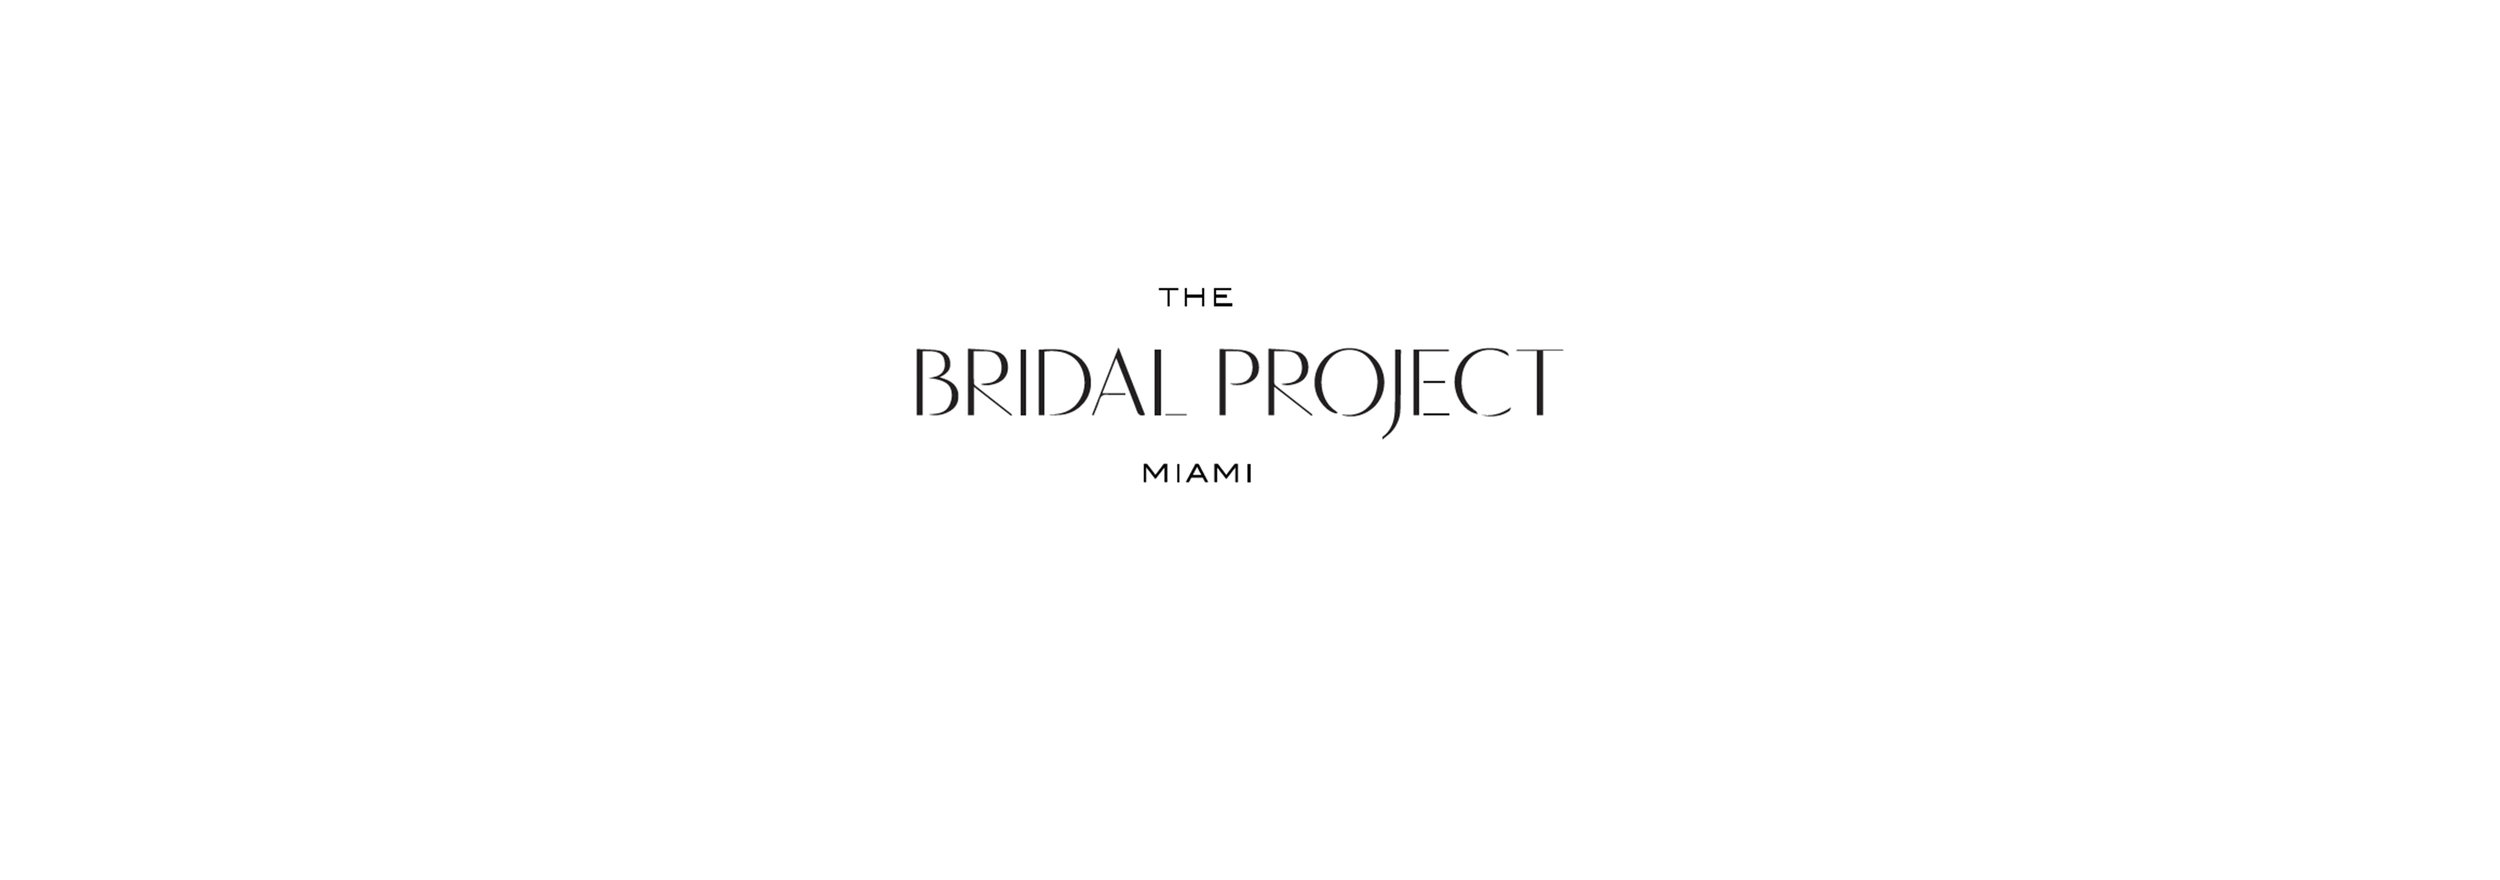 TheBridalProject_GigMiami.jpg